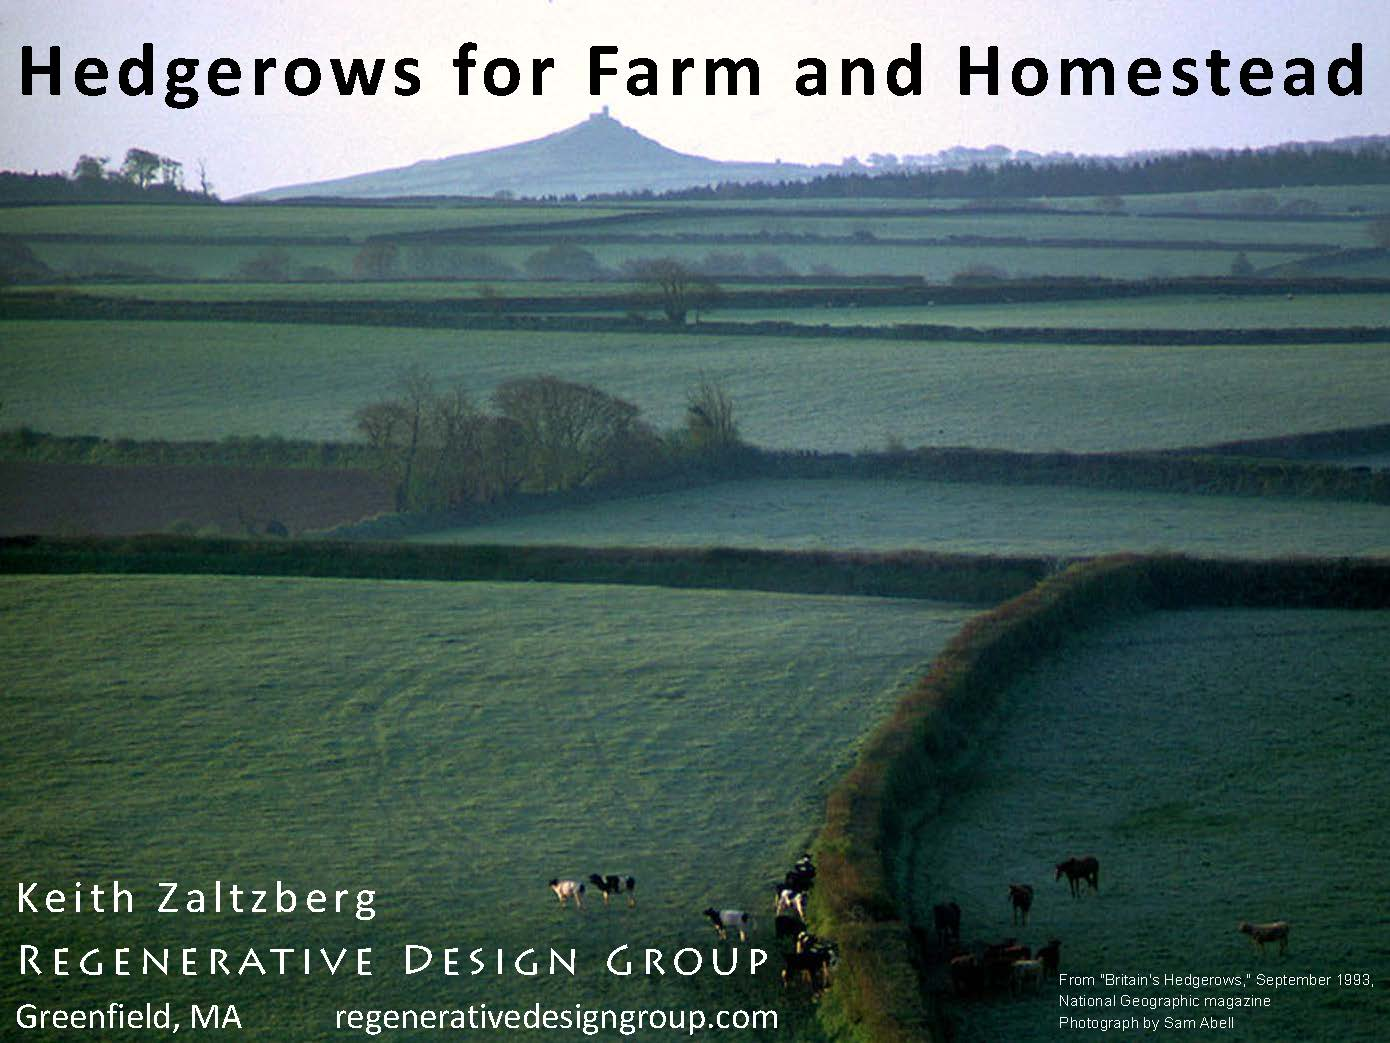 Pages From Hedgerows Windbreaks 2014KZ 3